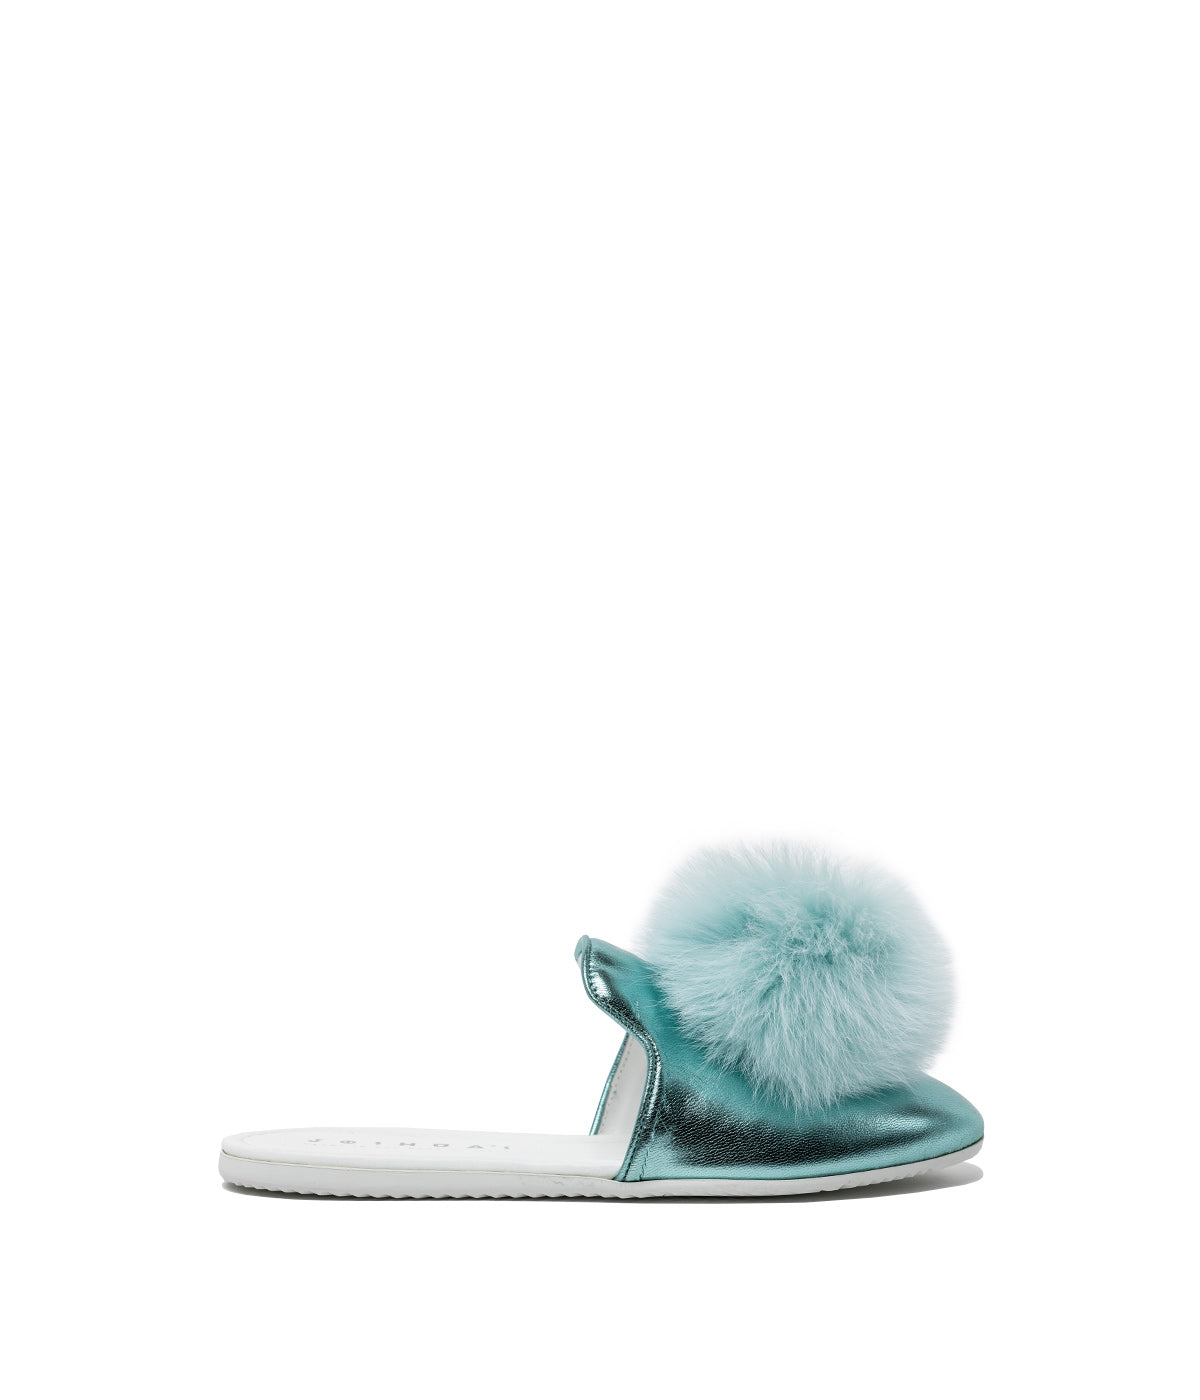 Metallic Blue Pom Pom Sandals